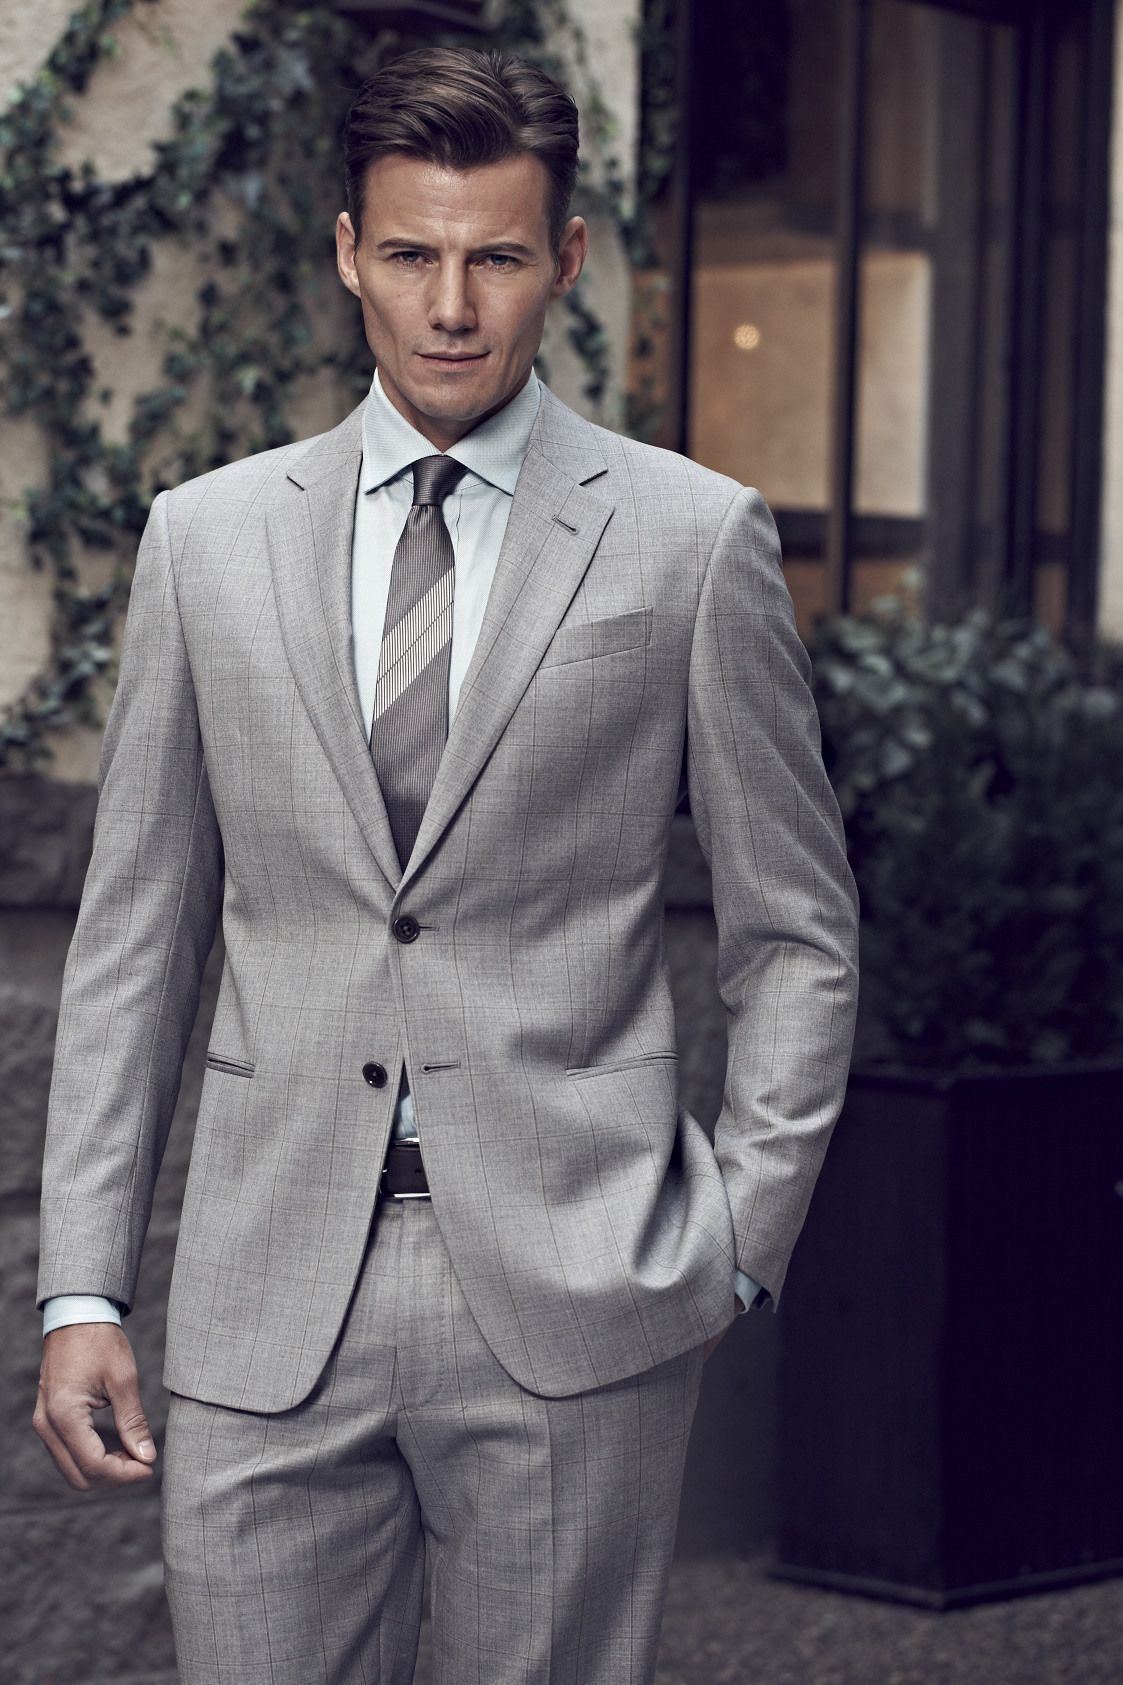 Armani collezioni windowpane wool suit in grey 2295 for Oxford shirt with tie